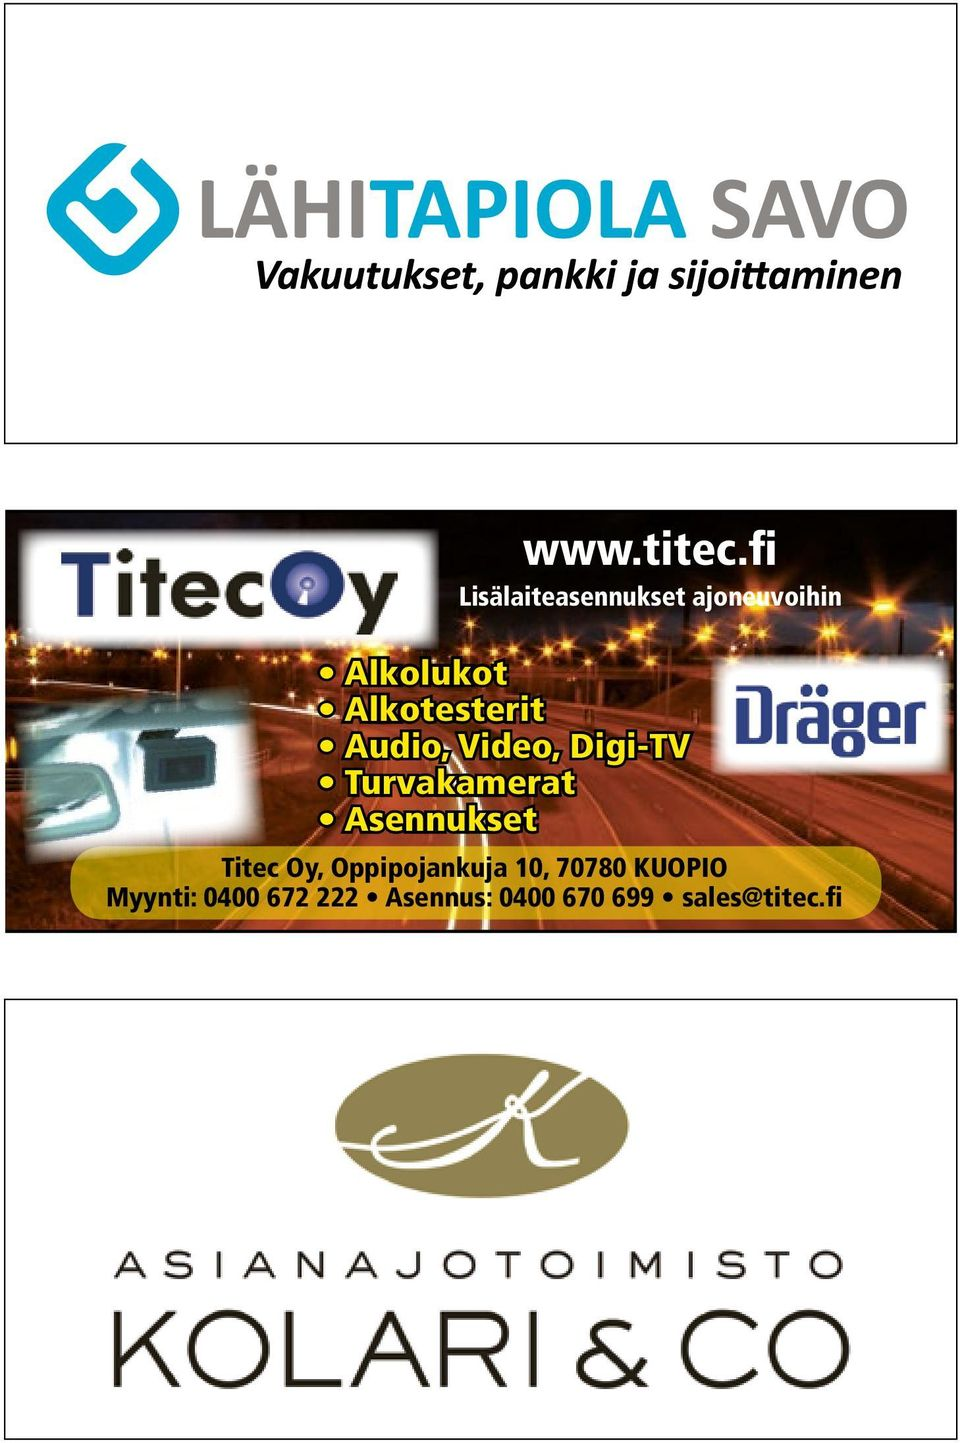 Asennus: 0400-670 699 Alkolukot Alkotesterit Audio, Video, Digi-TV